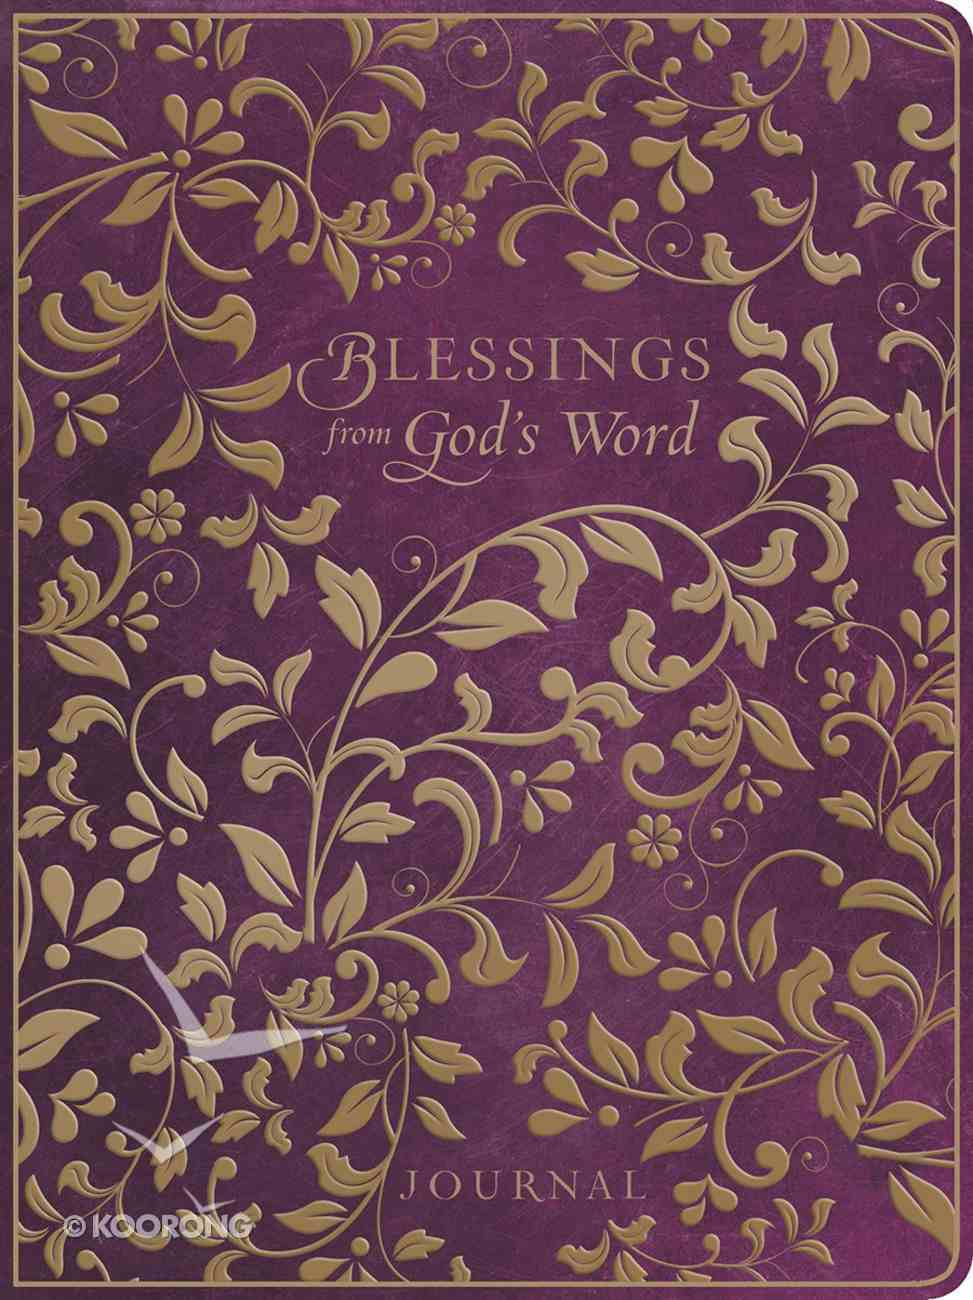 Premium Journal: Blessings From God's Word Purple Leatherluxe Imitation Leather